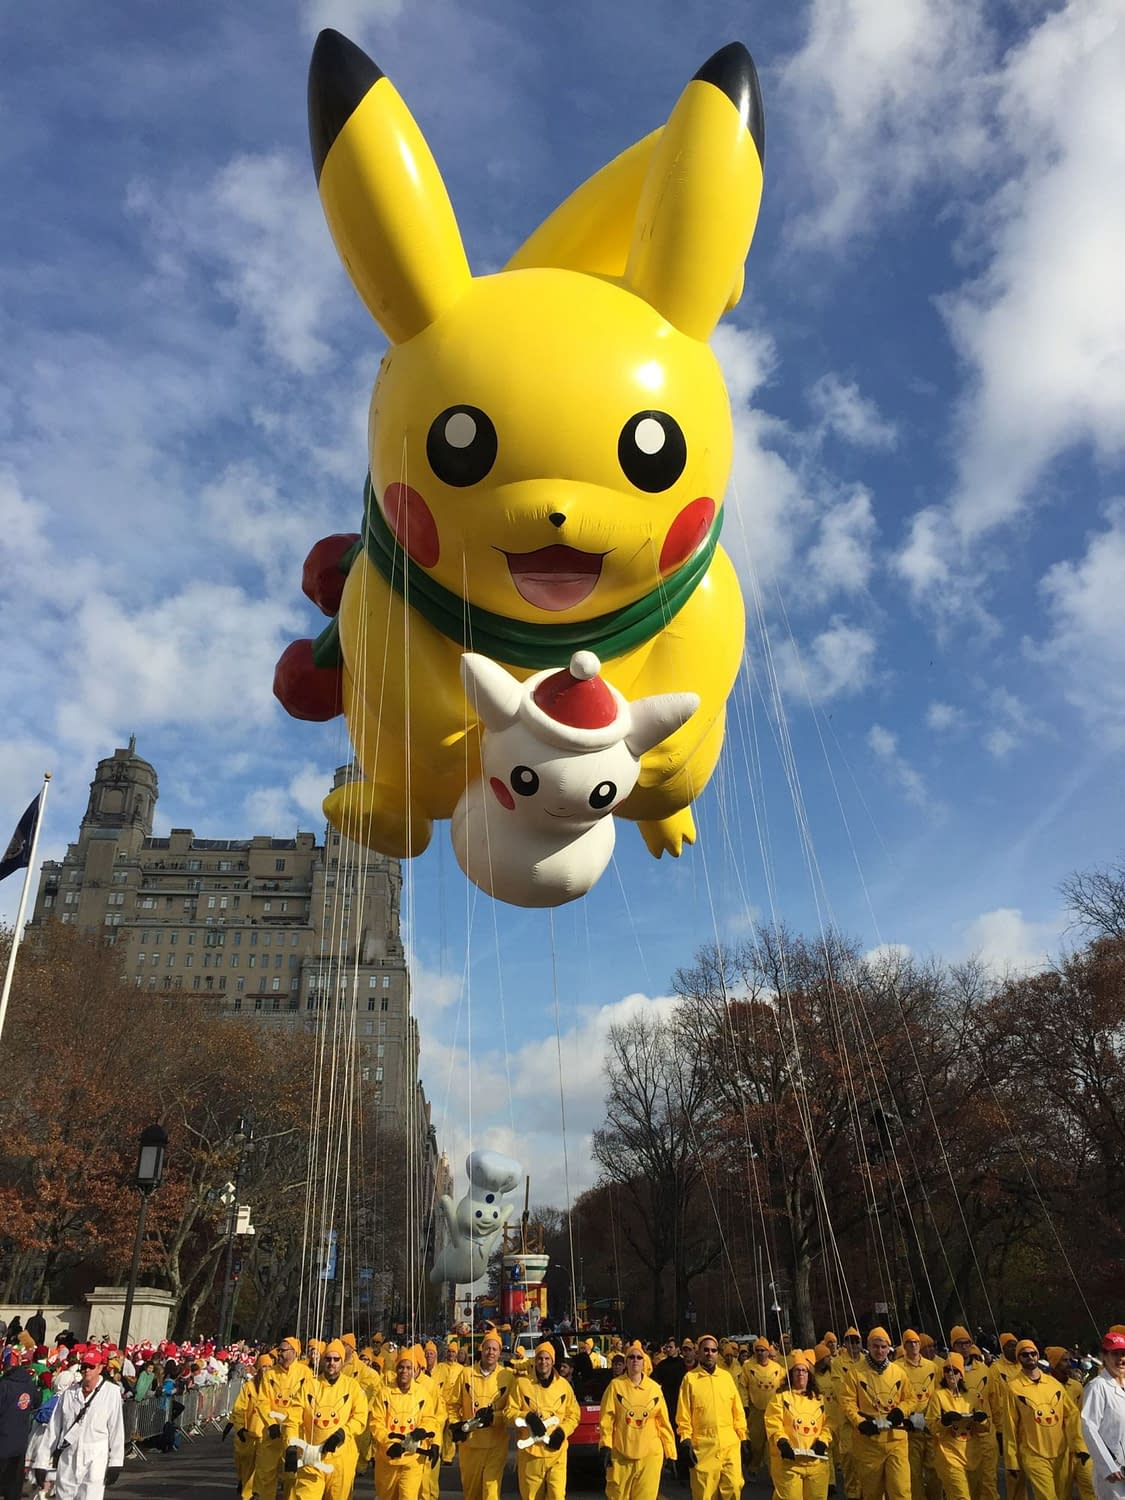 Pokémon Special Performance Scheduled For Macy's Parade